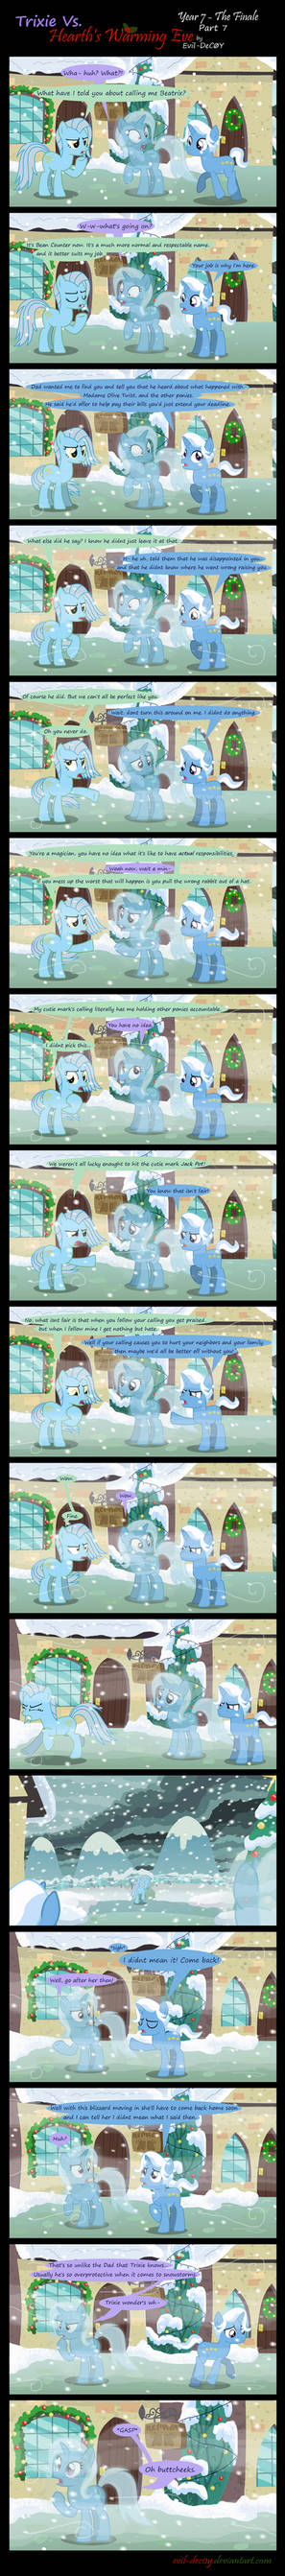 Trixie Vs. Hearth's Warming Eve: Finale (Part 7)